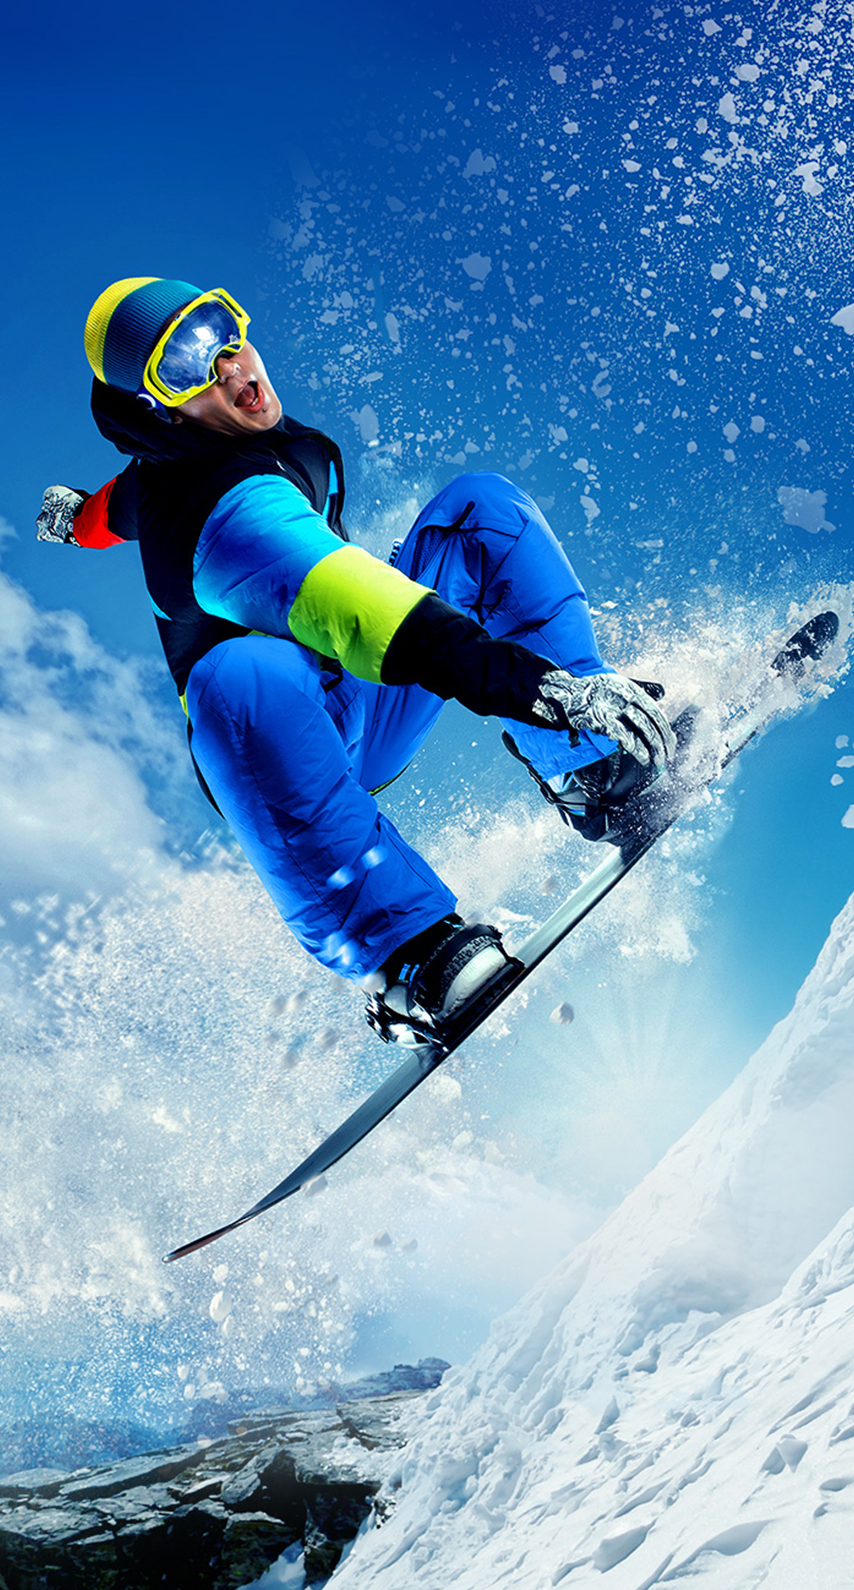 fast, snowboard, exhilaration, skier, adventure, agility, goggles, freestyle